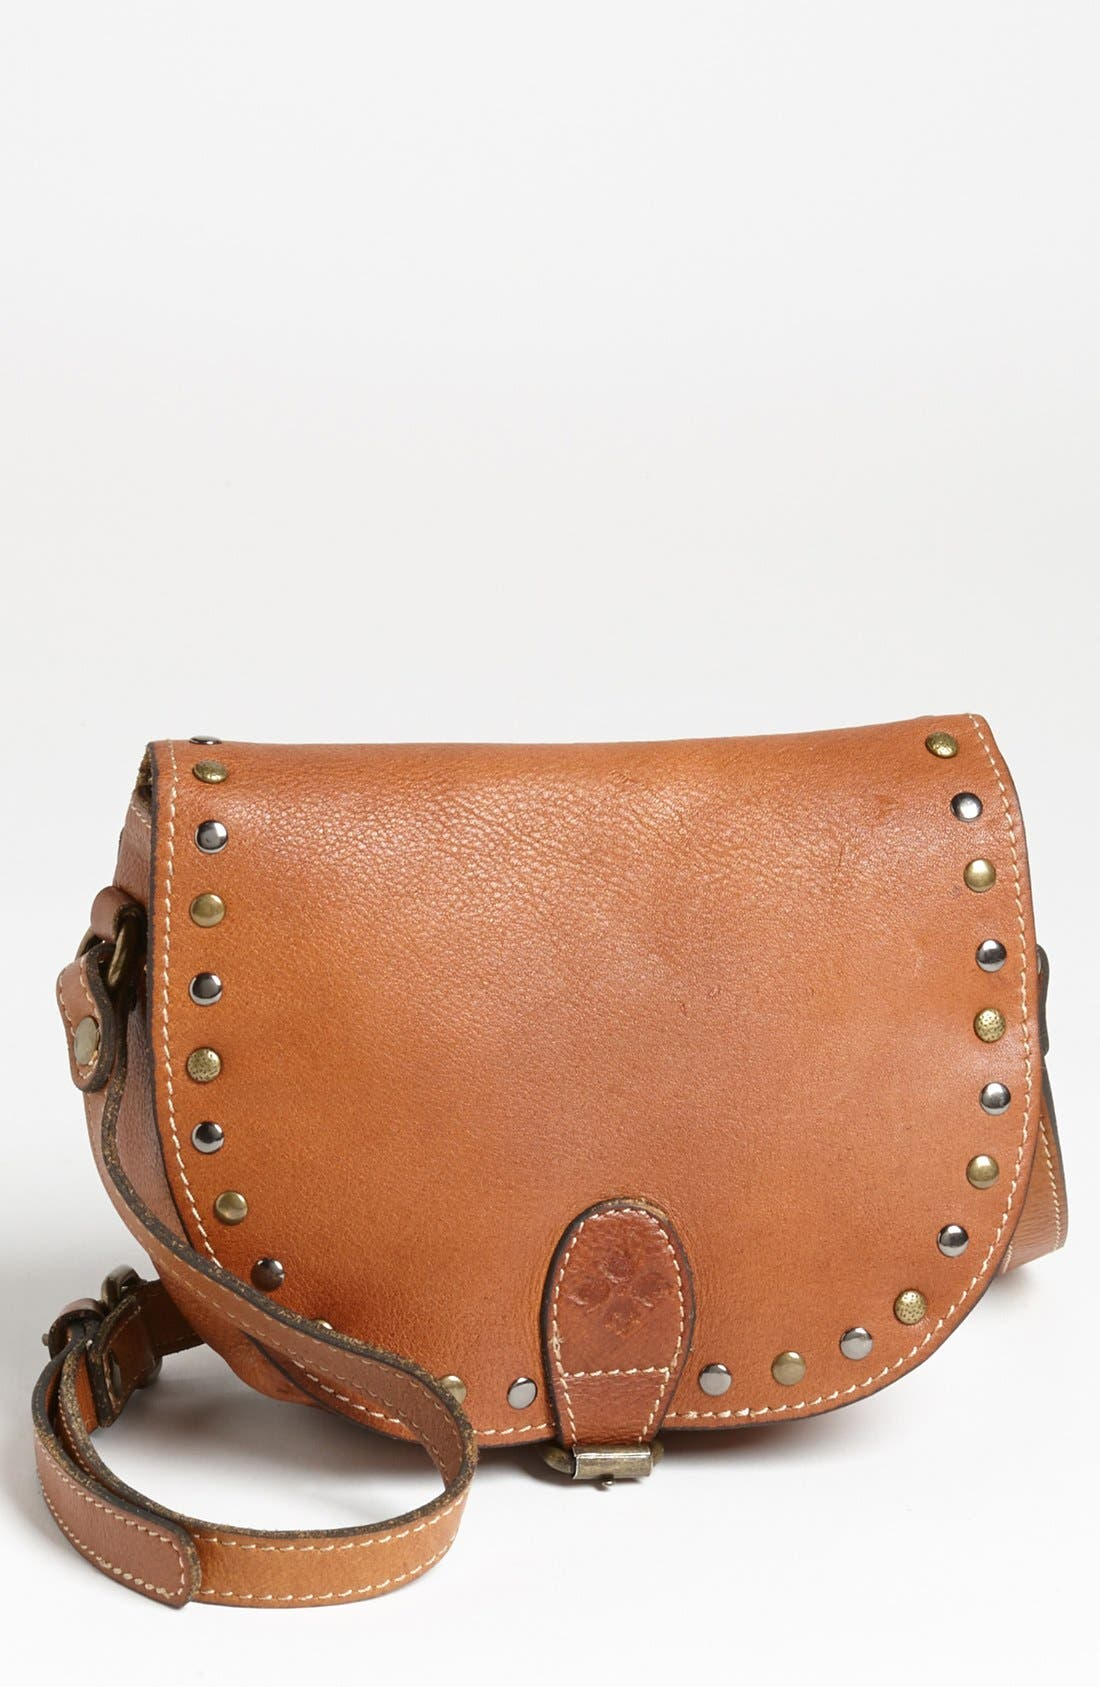 Alternate Image 1 Selected - Patricia Nash 'Isola - Small' Leather Crossbody Bag